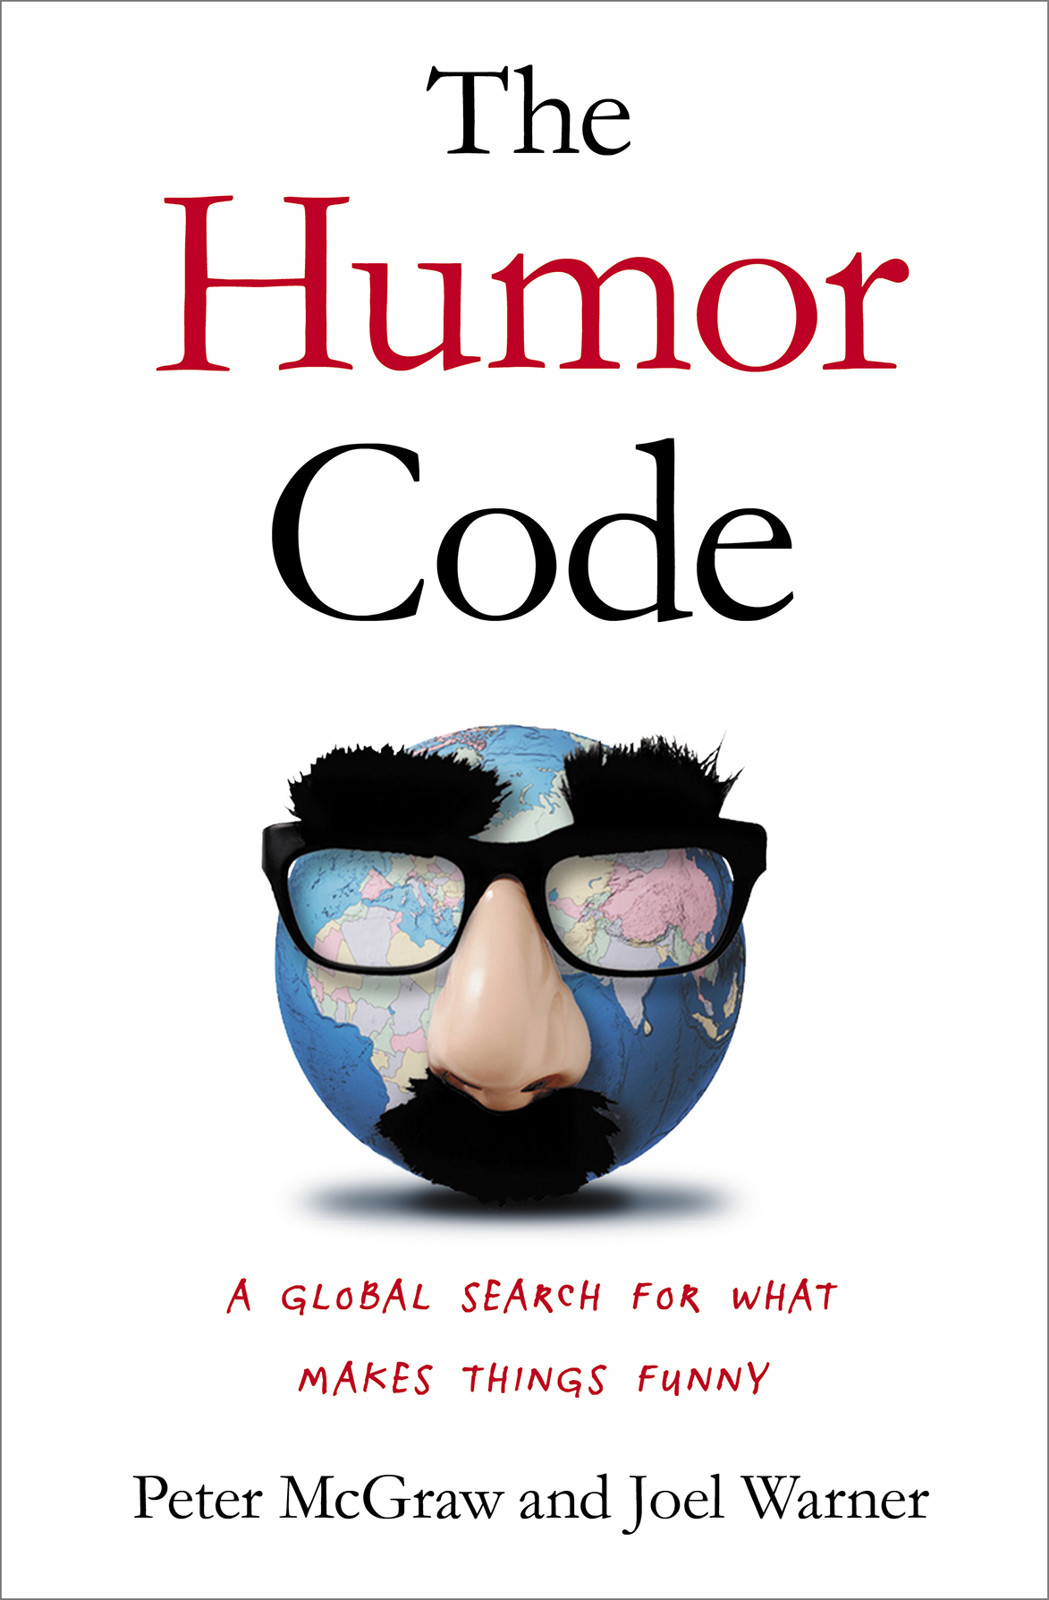 The Humor Code 封面